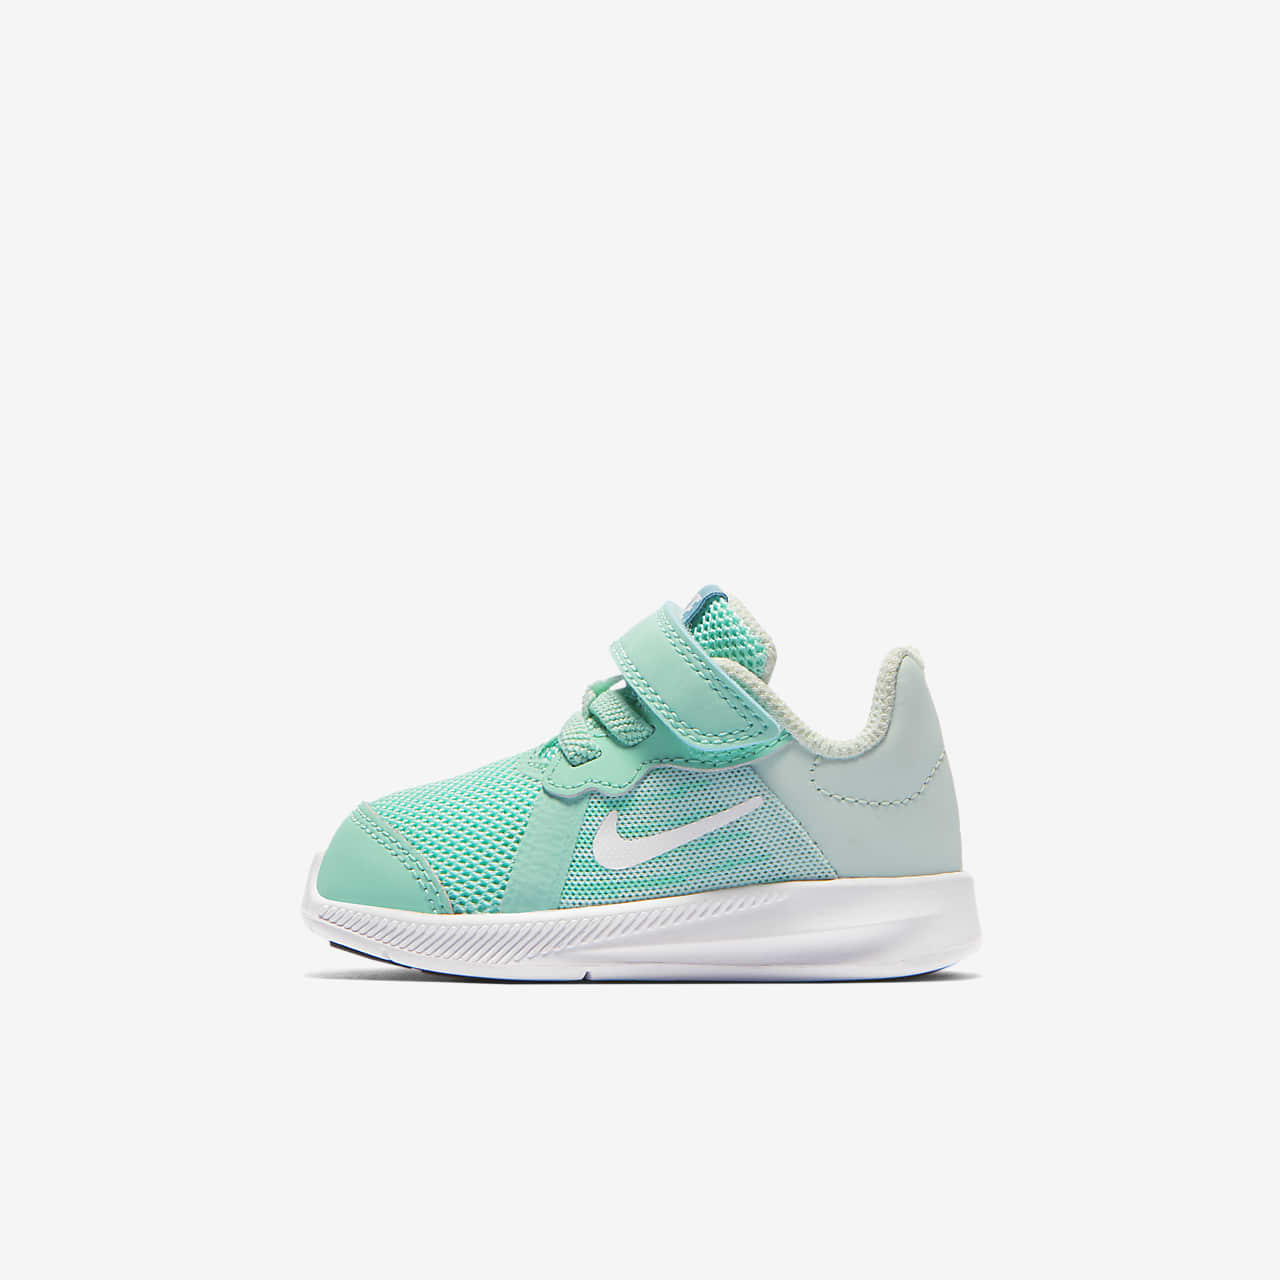 Nike Downshifter 8 Baby & Toddler Shoes